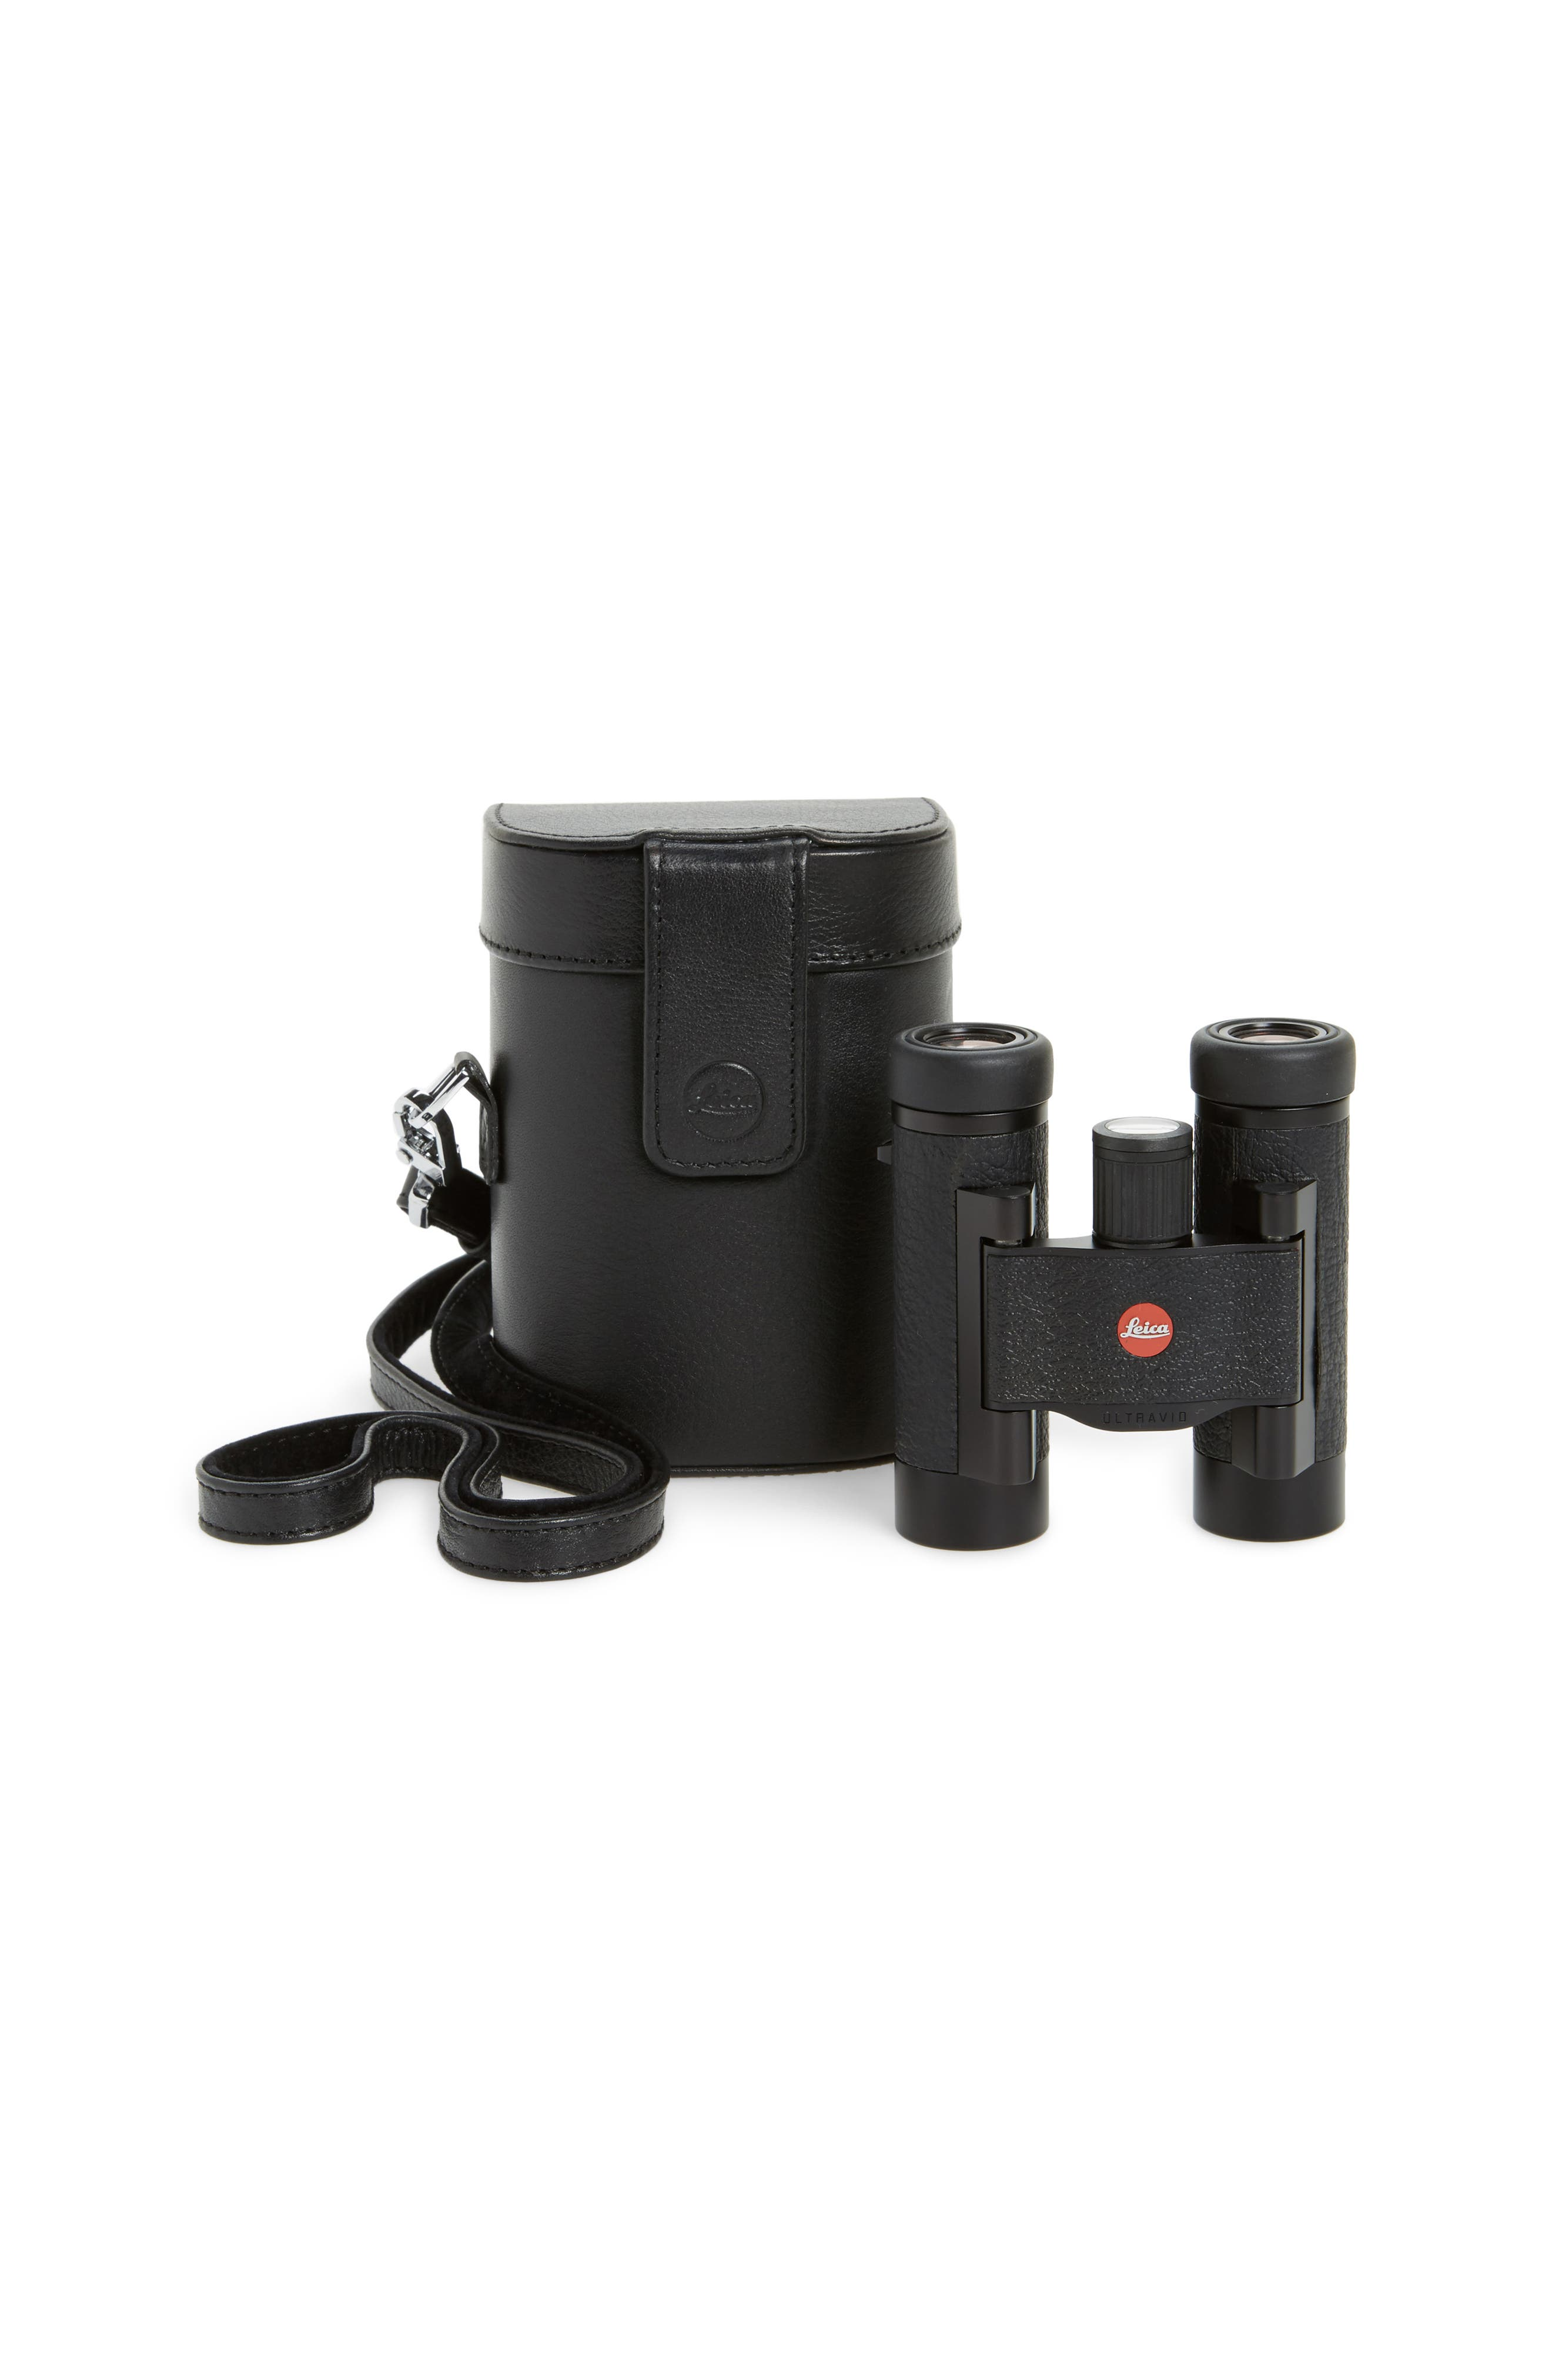 Ultravid Compact 8 x 20 Binocular,                         Main,                         color, 001